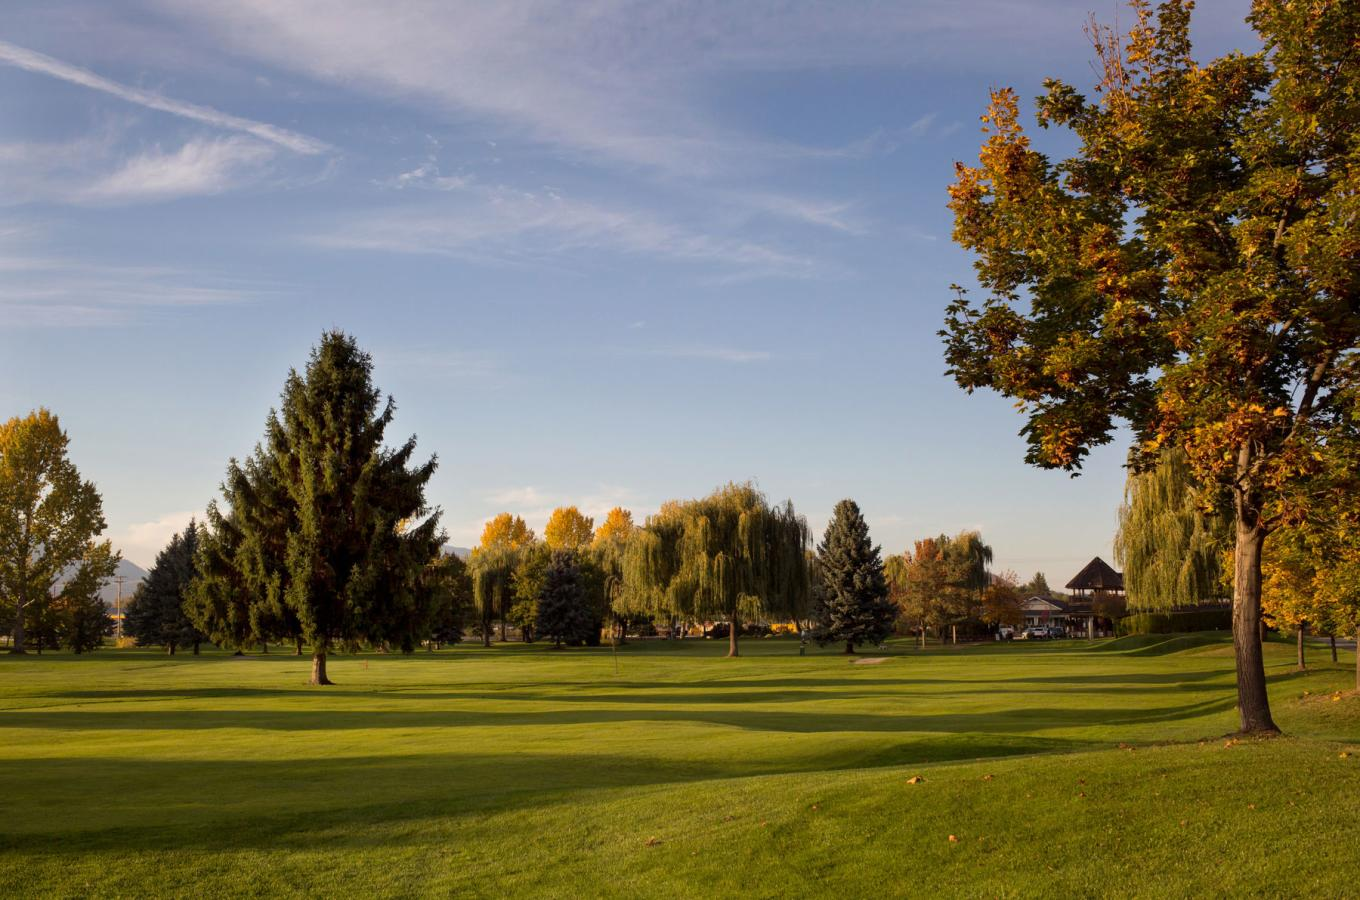 Mission Creek Golf Course Image 6